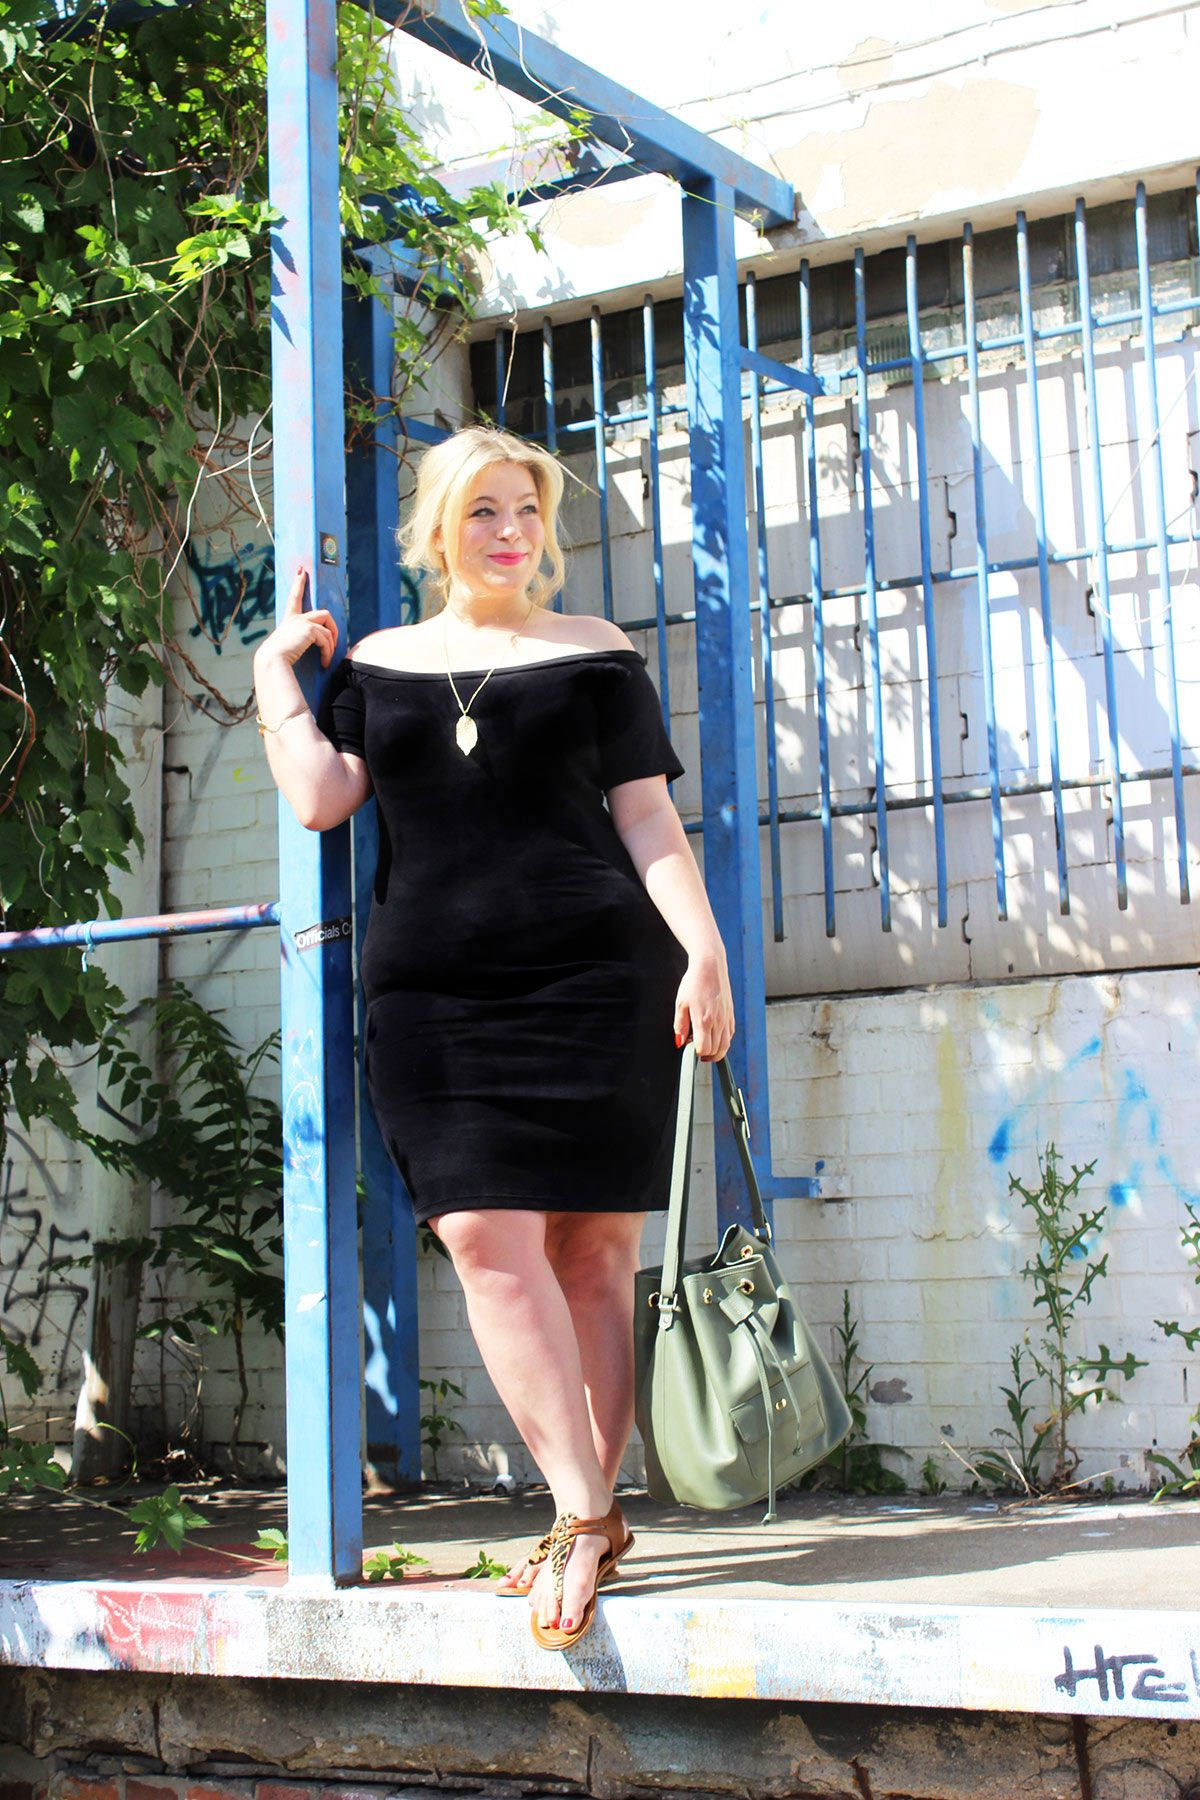 Just be yourself: Gartenparty / Plus Size | Curvy, Curvy style and ...